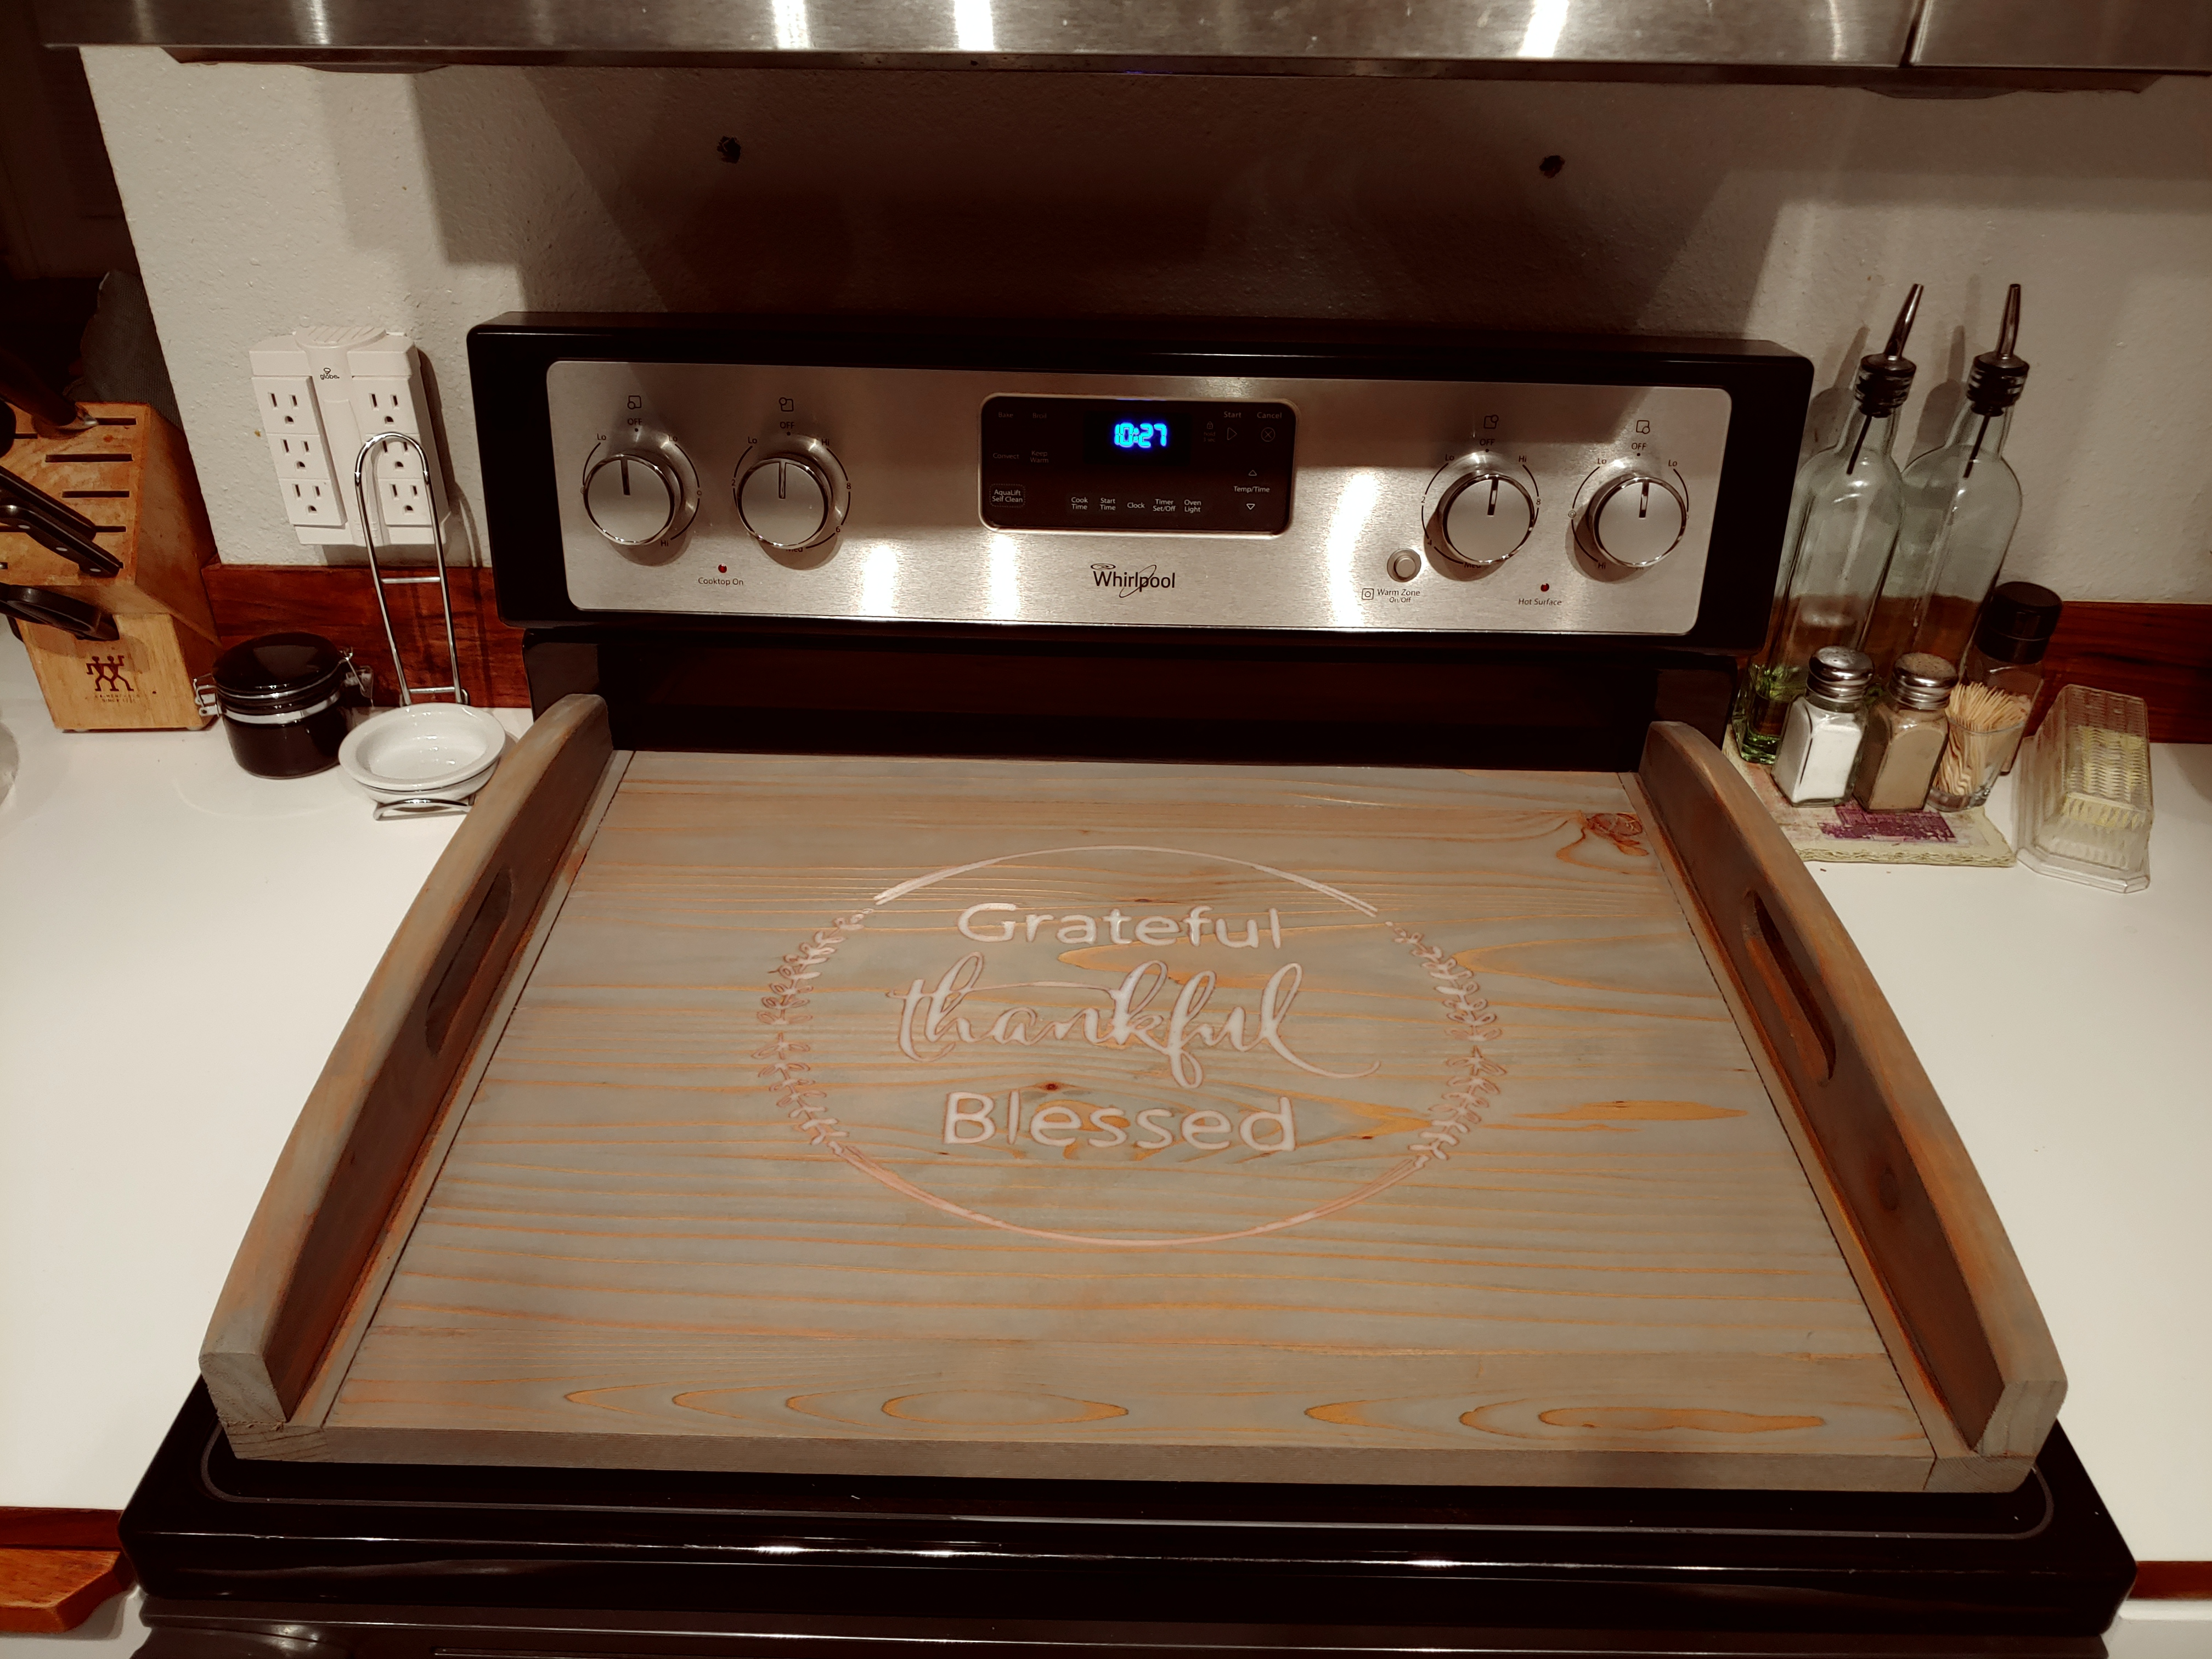 Engraved Stove Topper